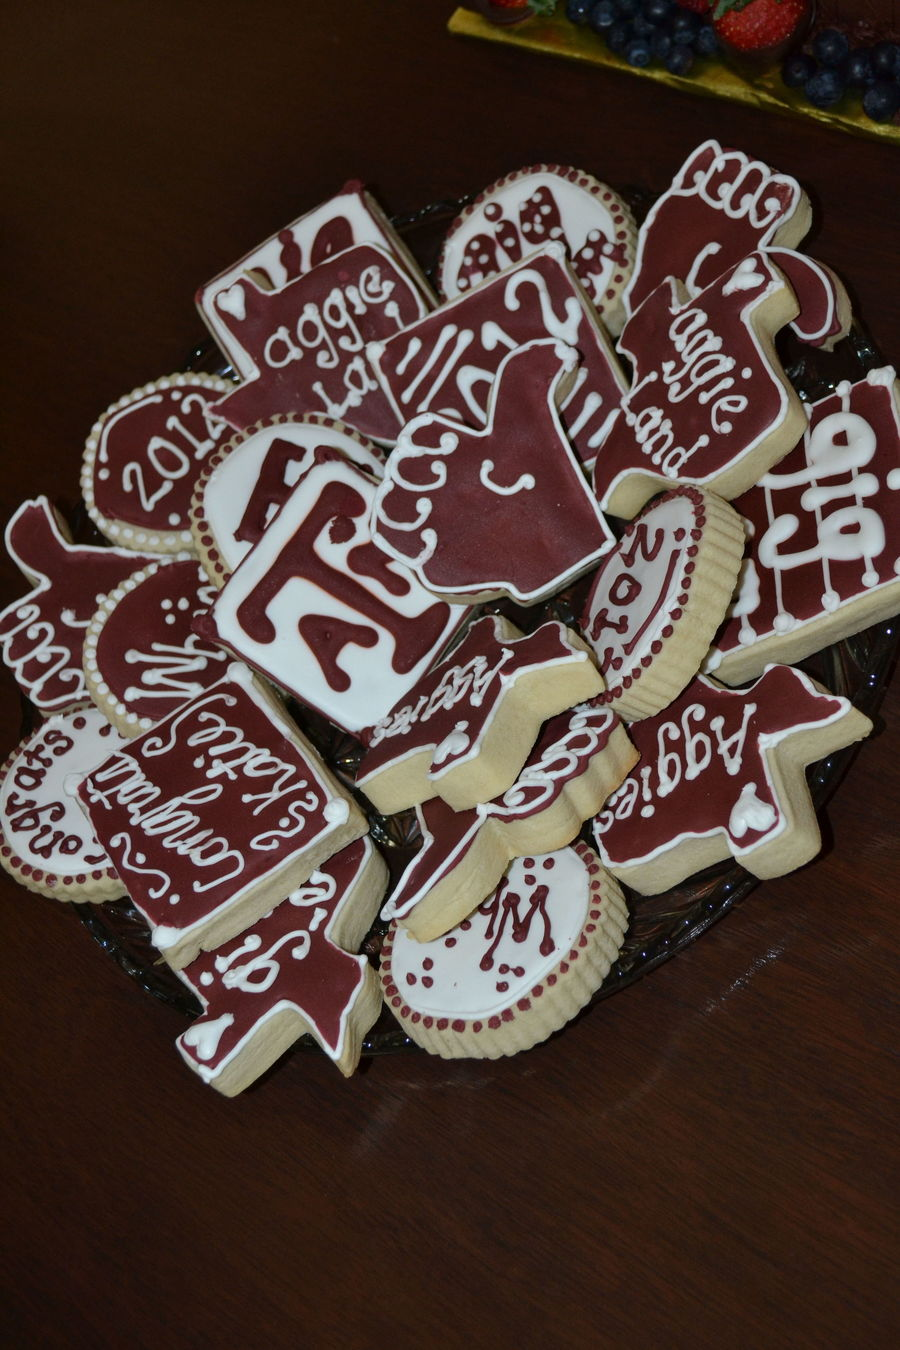 Texas Aampm Aggie Maroon Amp White Graduation Cookies on Cake Central